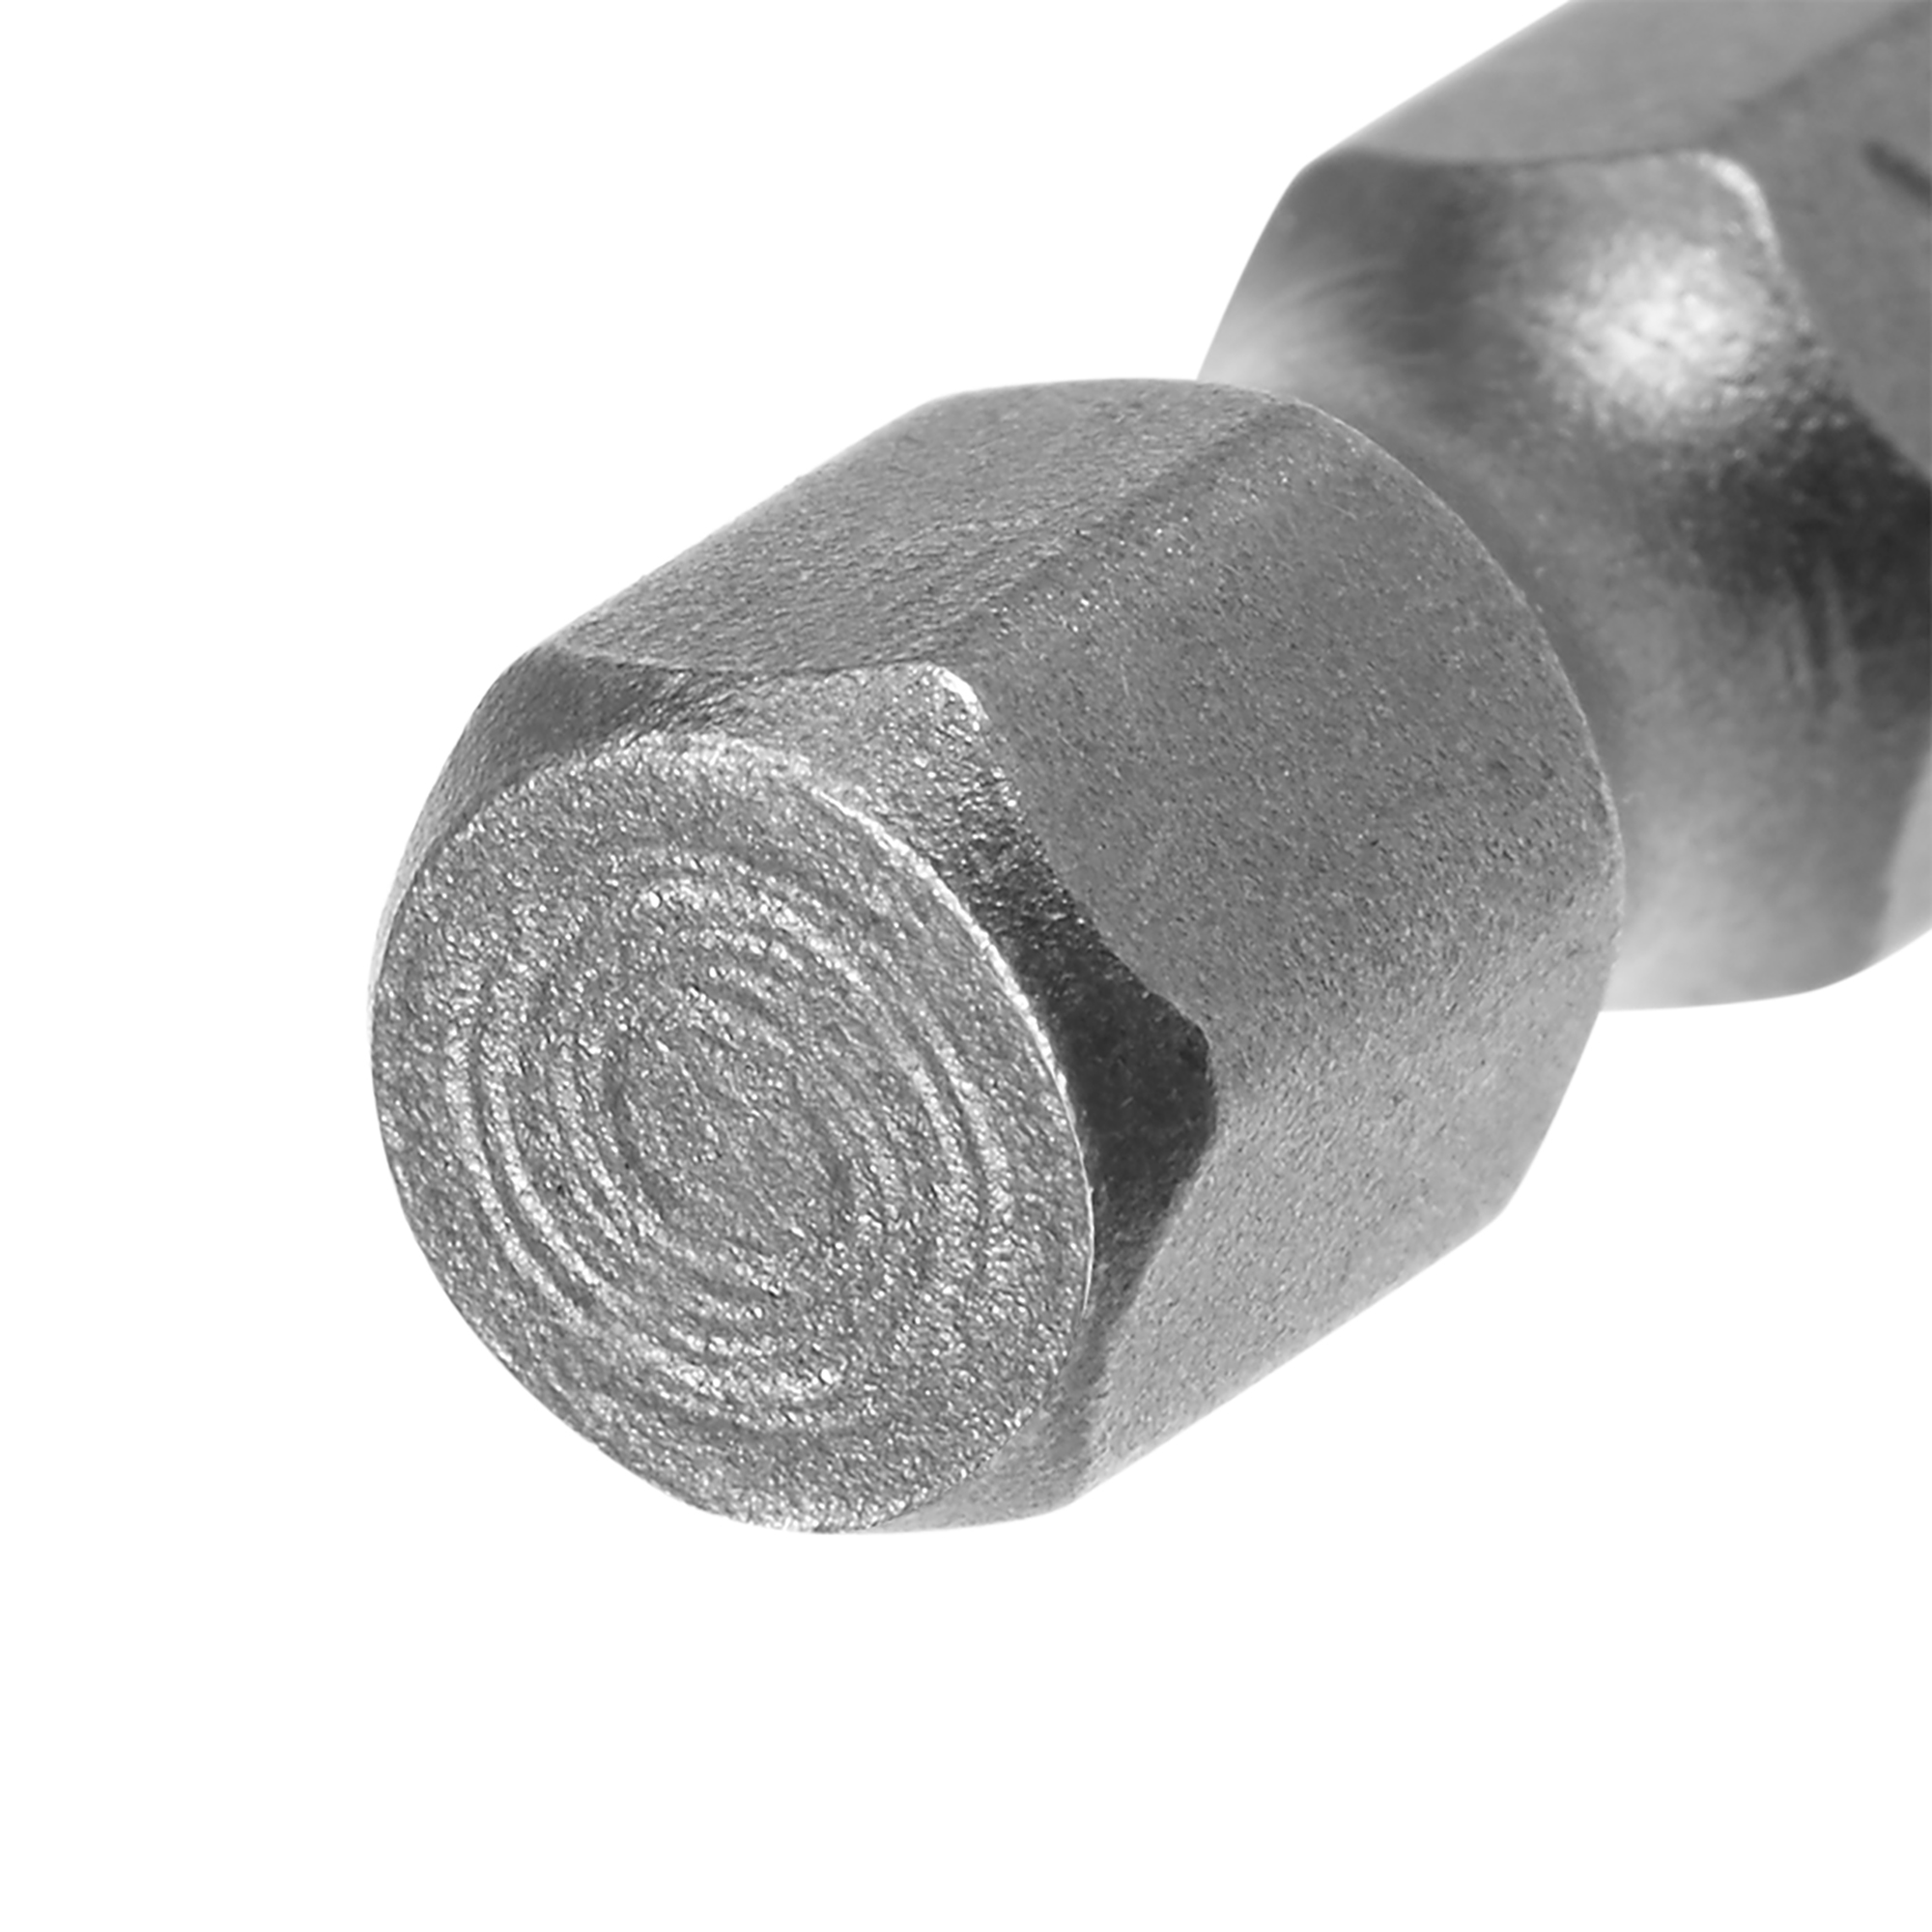 """5Pcs 1/4"""" Hex Shank 100mm Length Magnetic Hex Head H4 Screwdriver Bits S2 Alloy Steel - image 3 of 4"""